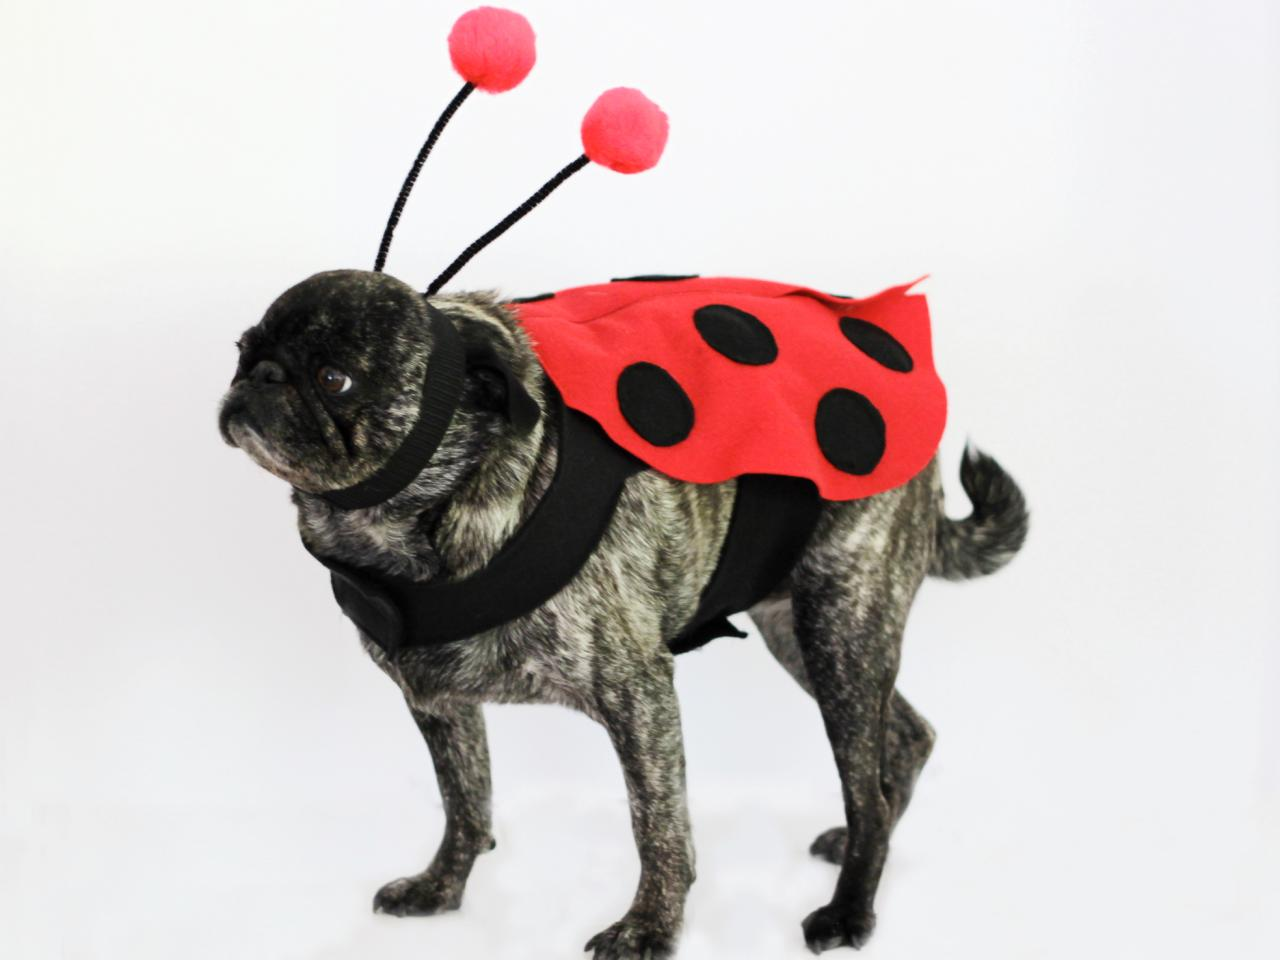 diy ladybug halloween costume for dogs | how-tos | diy